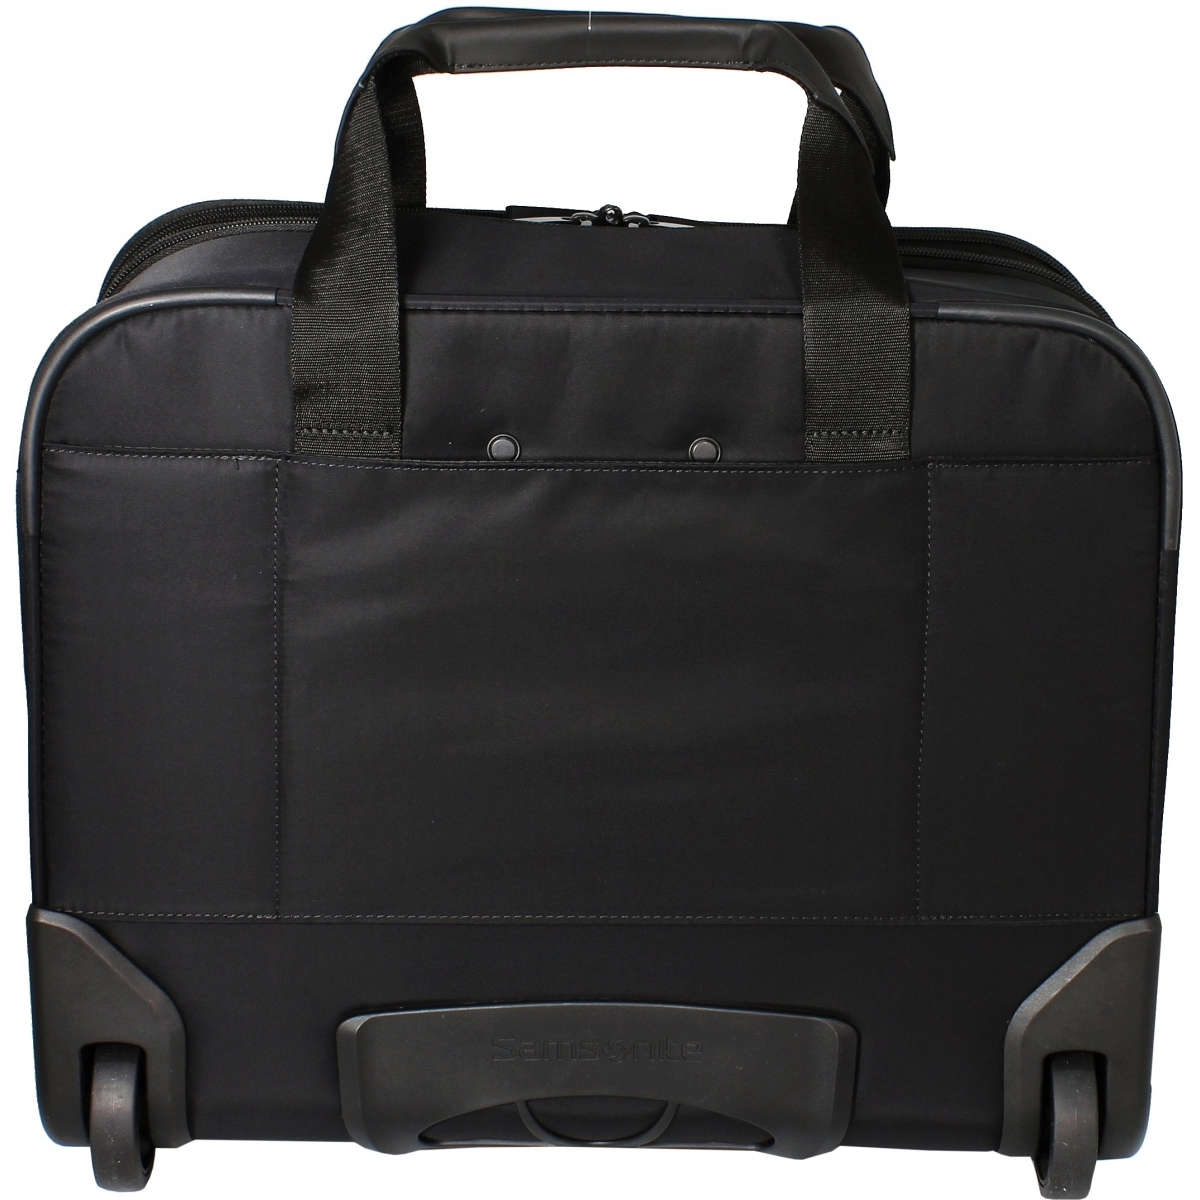 pilot case porte ordinateur cityvibe rollingtote 16 samsonite cityvibe60 couleur principale. Black Bedroom Furniture Sets. Home Design Ideas